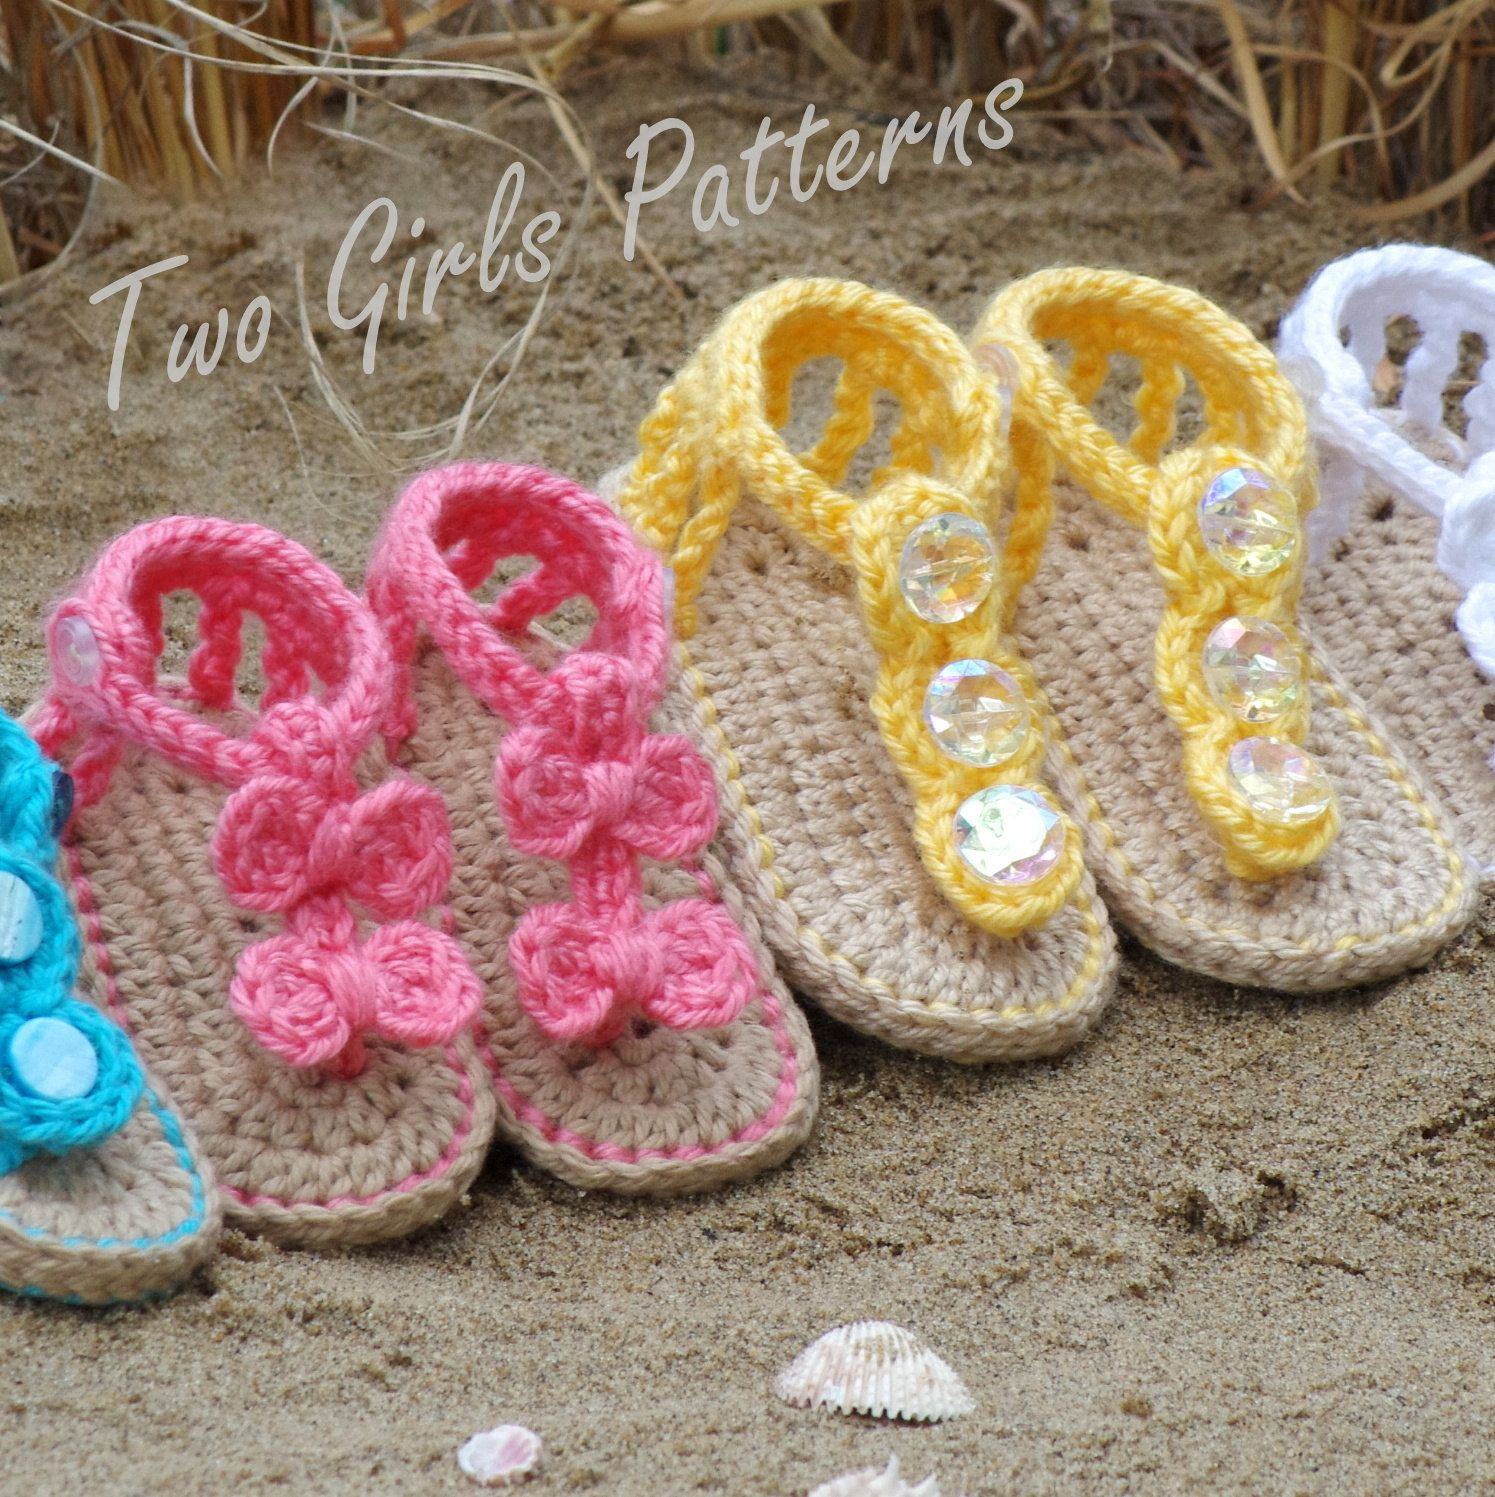 Crochet pattern 211 baby sandal 2 versions and free barefoot crochet pattern 211 baby sandal 2 versions and free barefoot sandal pattern included with purchase instant download kc550 bankloansurffo Image collections